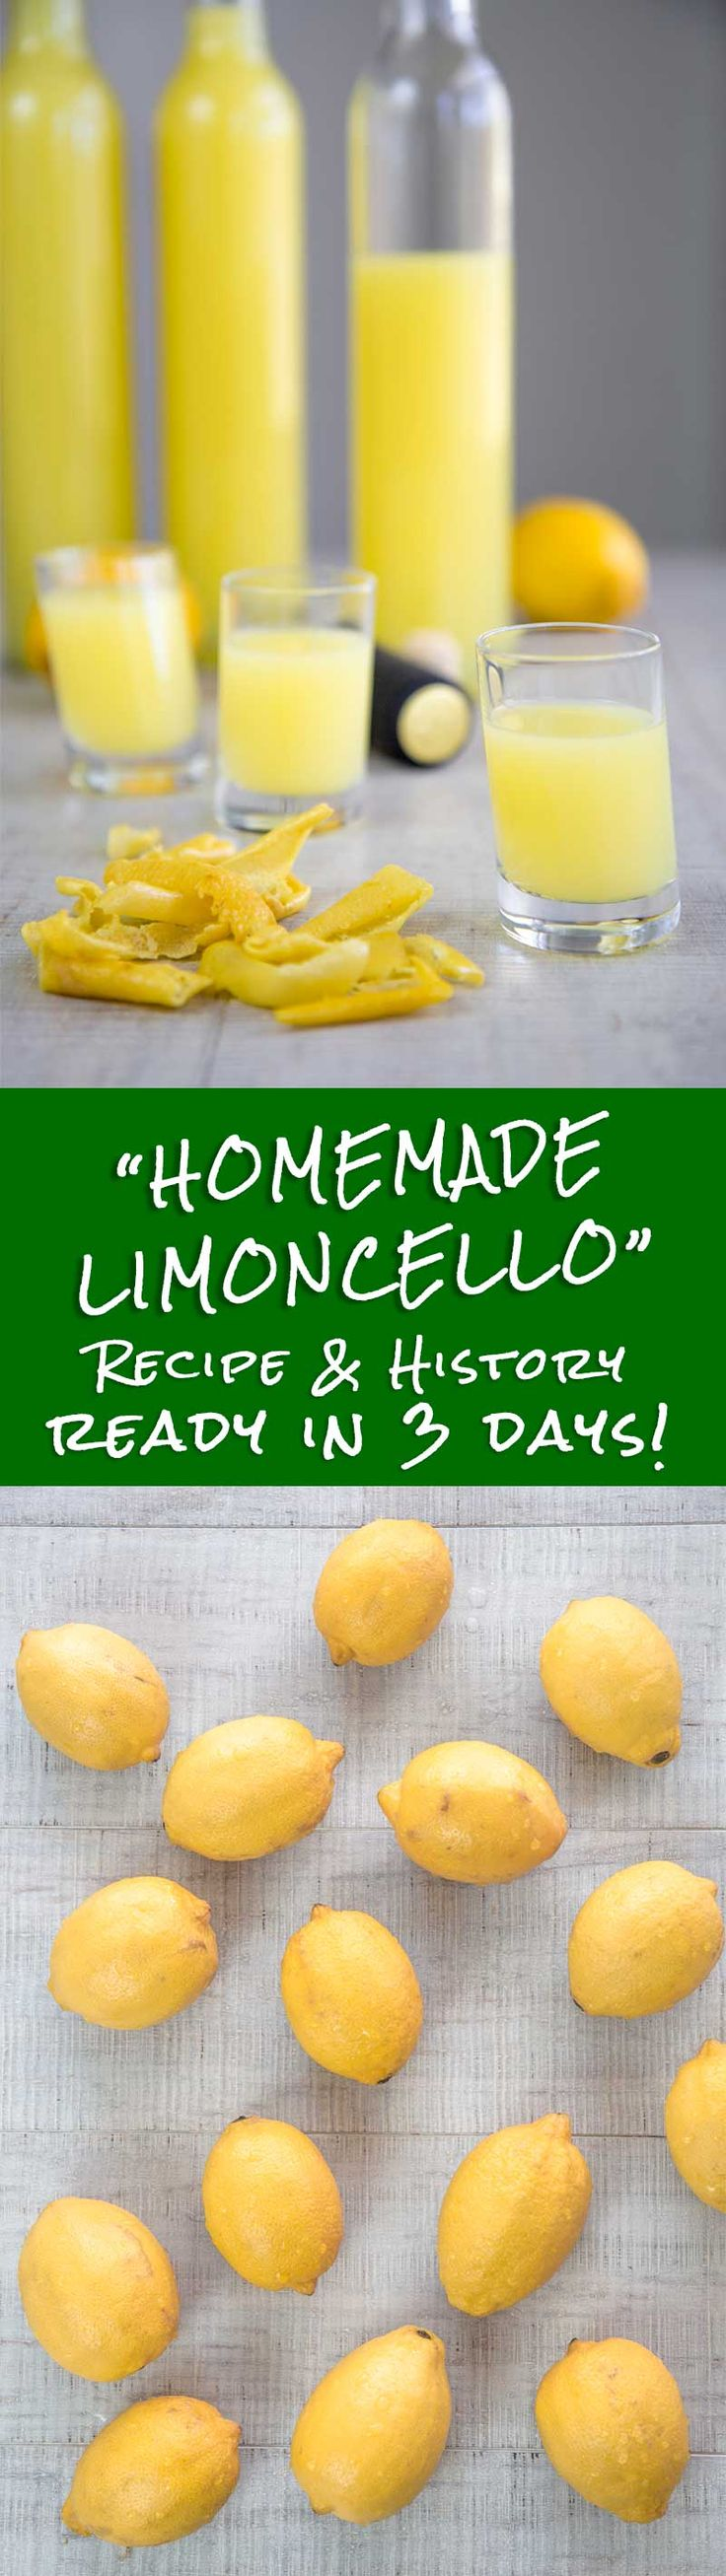 HOMEMADE LIMONCELLO ITALIAN RECIPE AND HISTORY – ready in 3 days! – Homemade Limoncello is a recipe very easy to prepare, a must for any Italian festivity! Even if, the traditional method needs a long time for the infusion, scientifically the taste of this delicious Italian after-dinner spirit made with lemons will be perfect in just three days! dessert, desserts, ice cream, cocktail, Christmas, thanksgiving, gatherings, Easter, Italian, family, recipes, party, lemoncello, digestrive, digesif